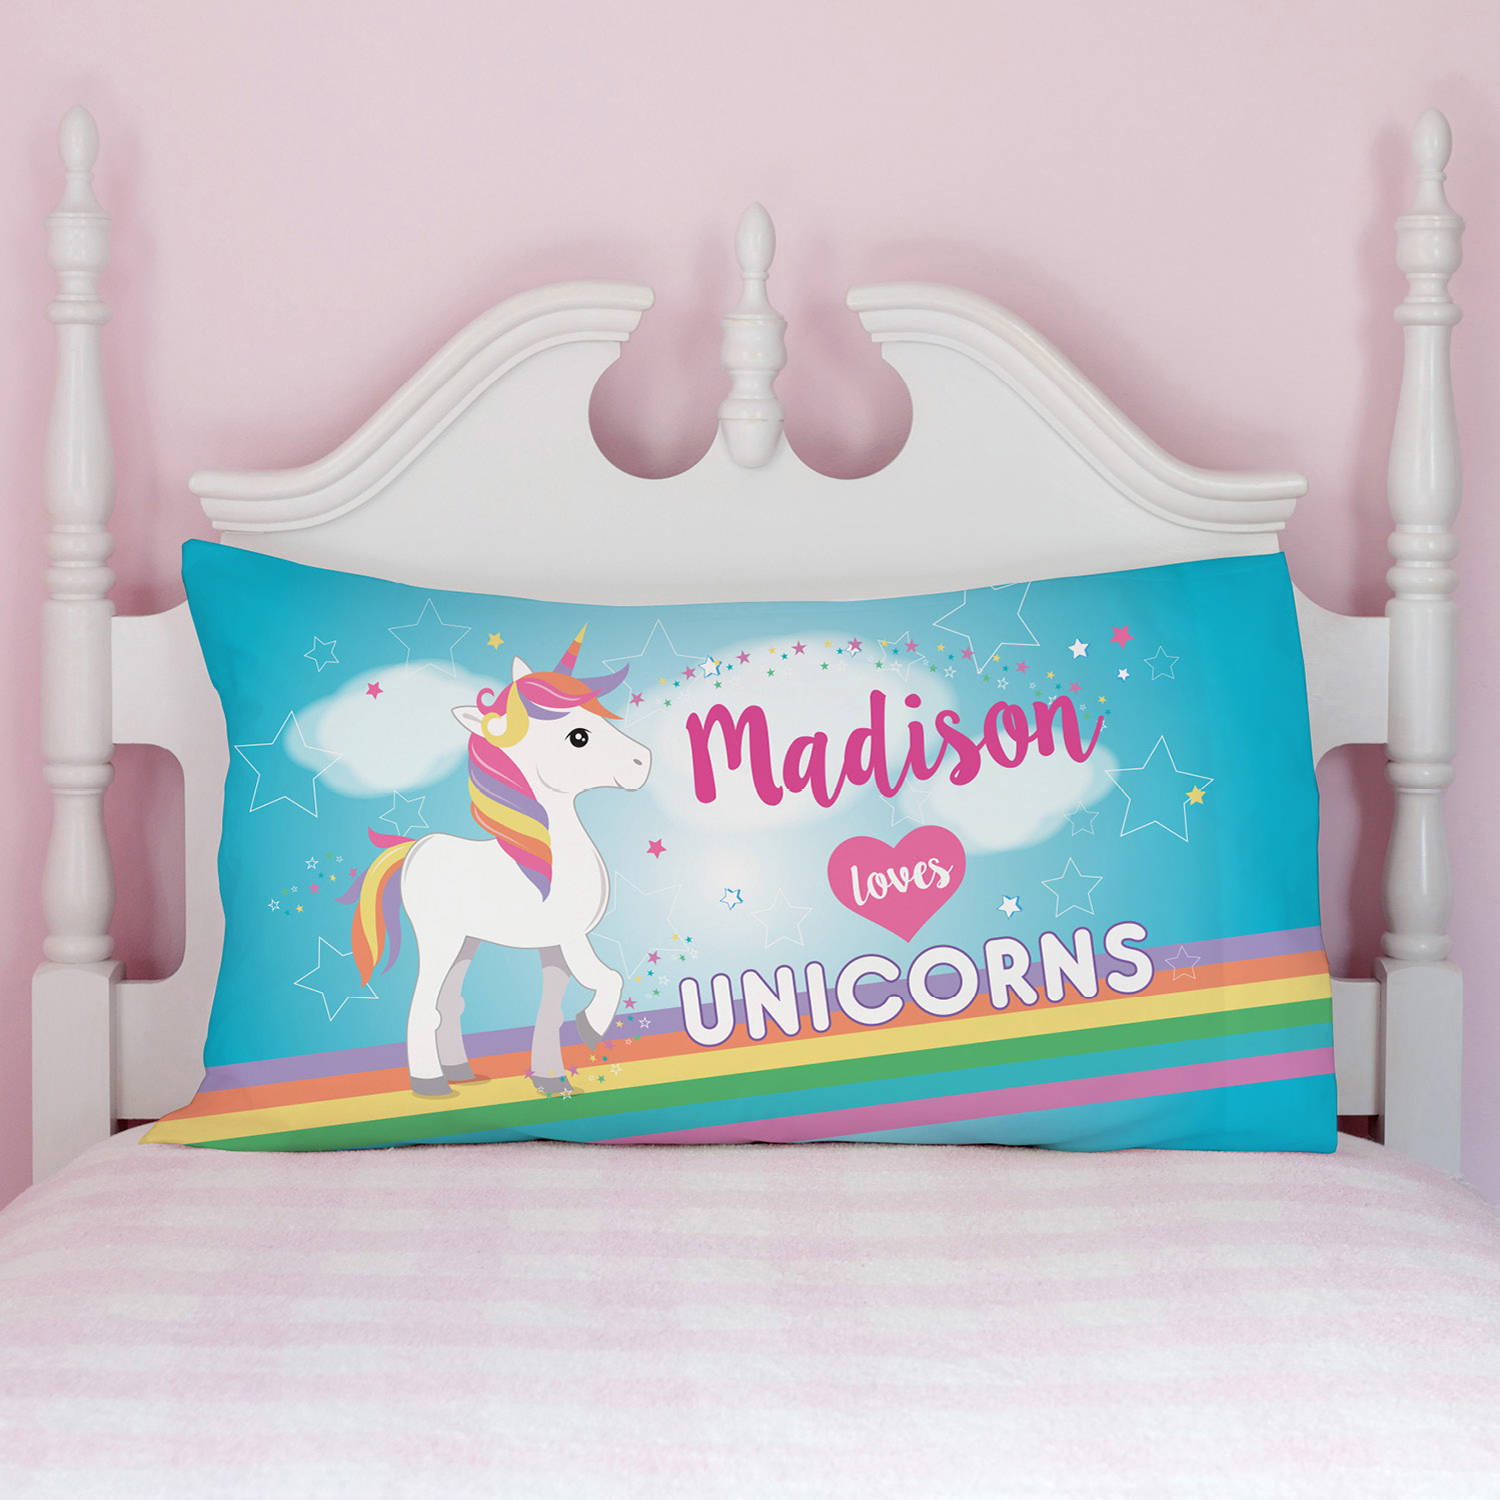 Personalized Pillowcases for Kids - Unicorn, Sports, Owl or Fire Truck